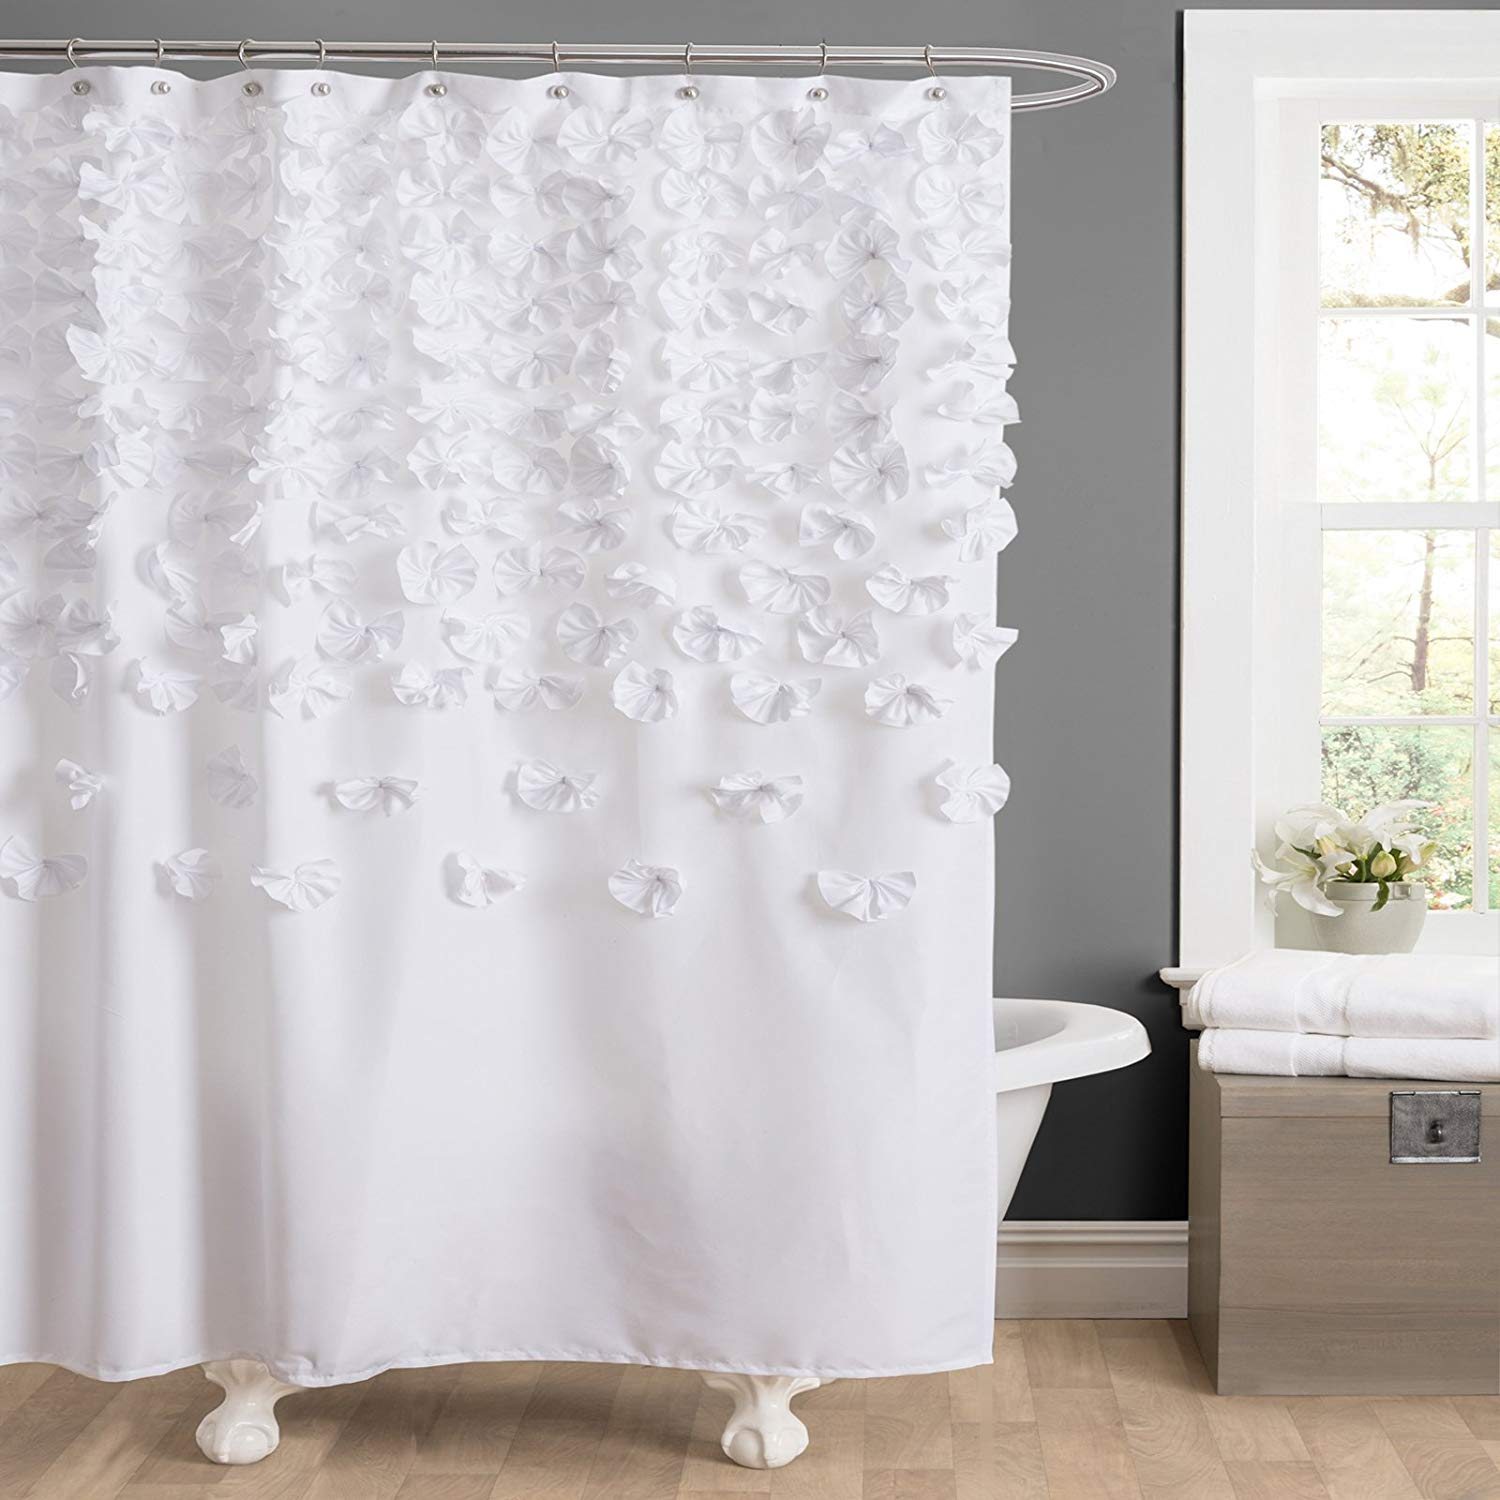 amazon.com: lush decor lucia shower curtain, 72 by 72-inch, white: home MMSICDY